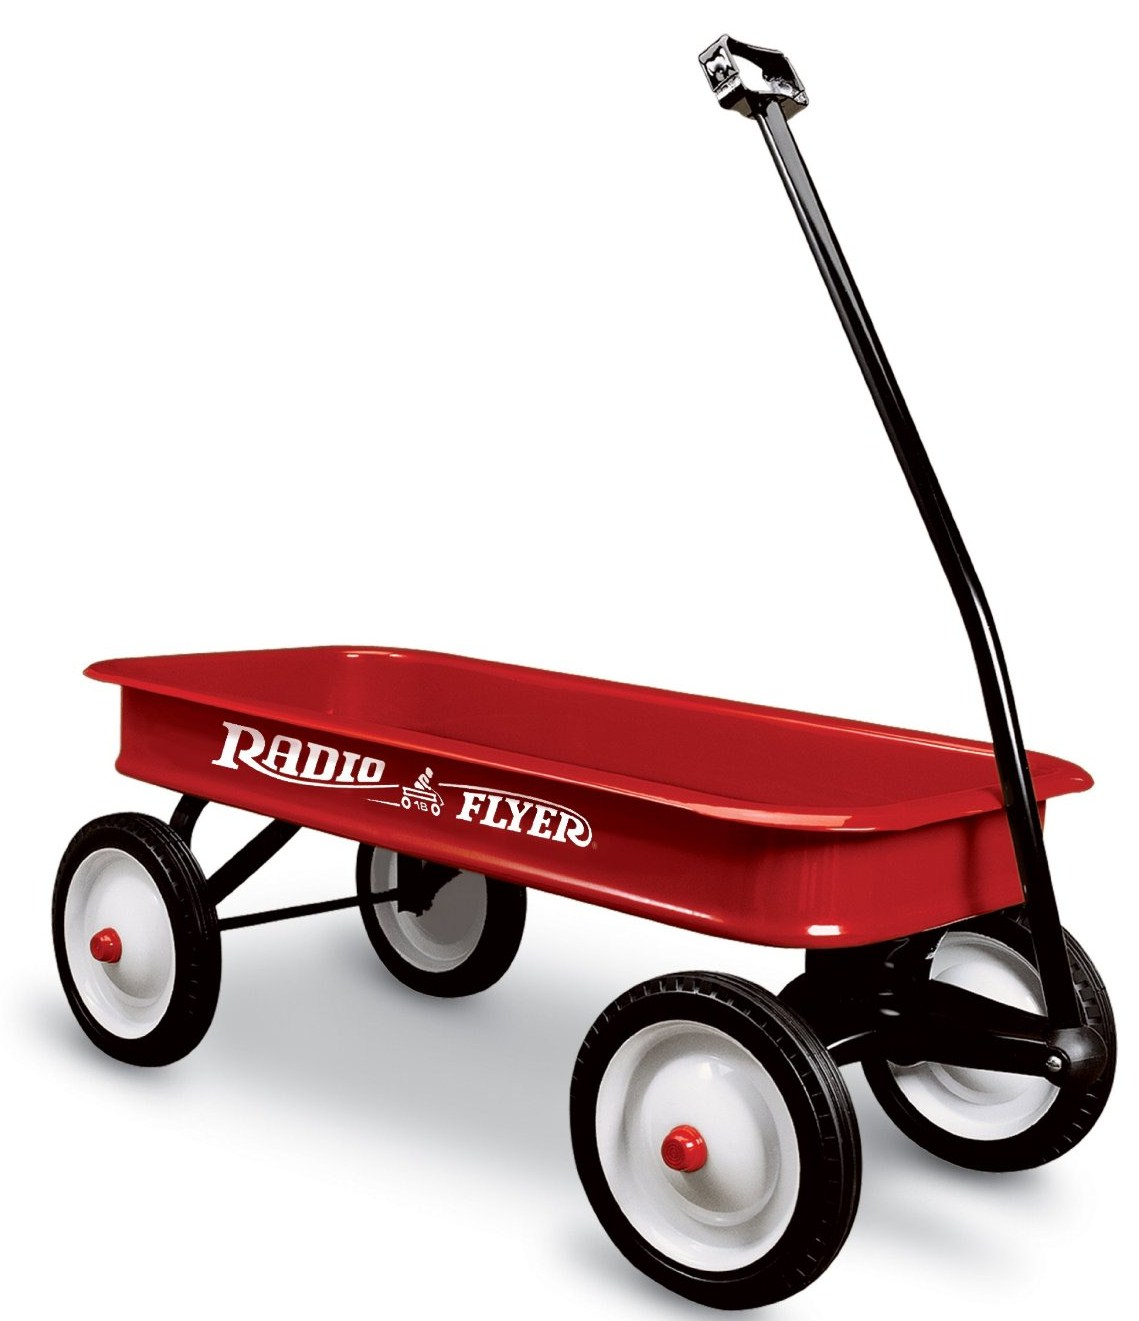 1 red wagon usa 1958